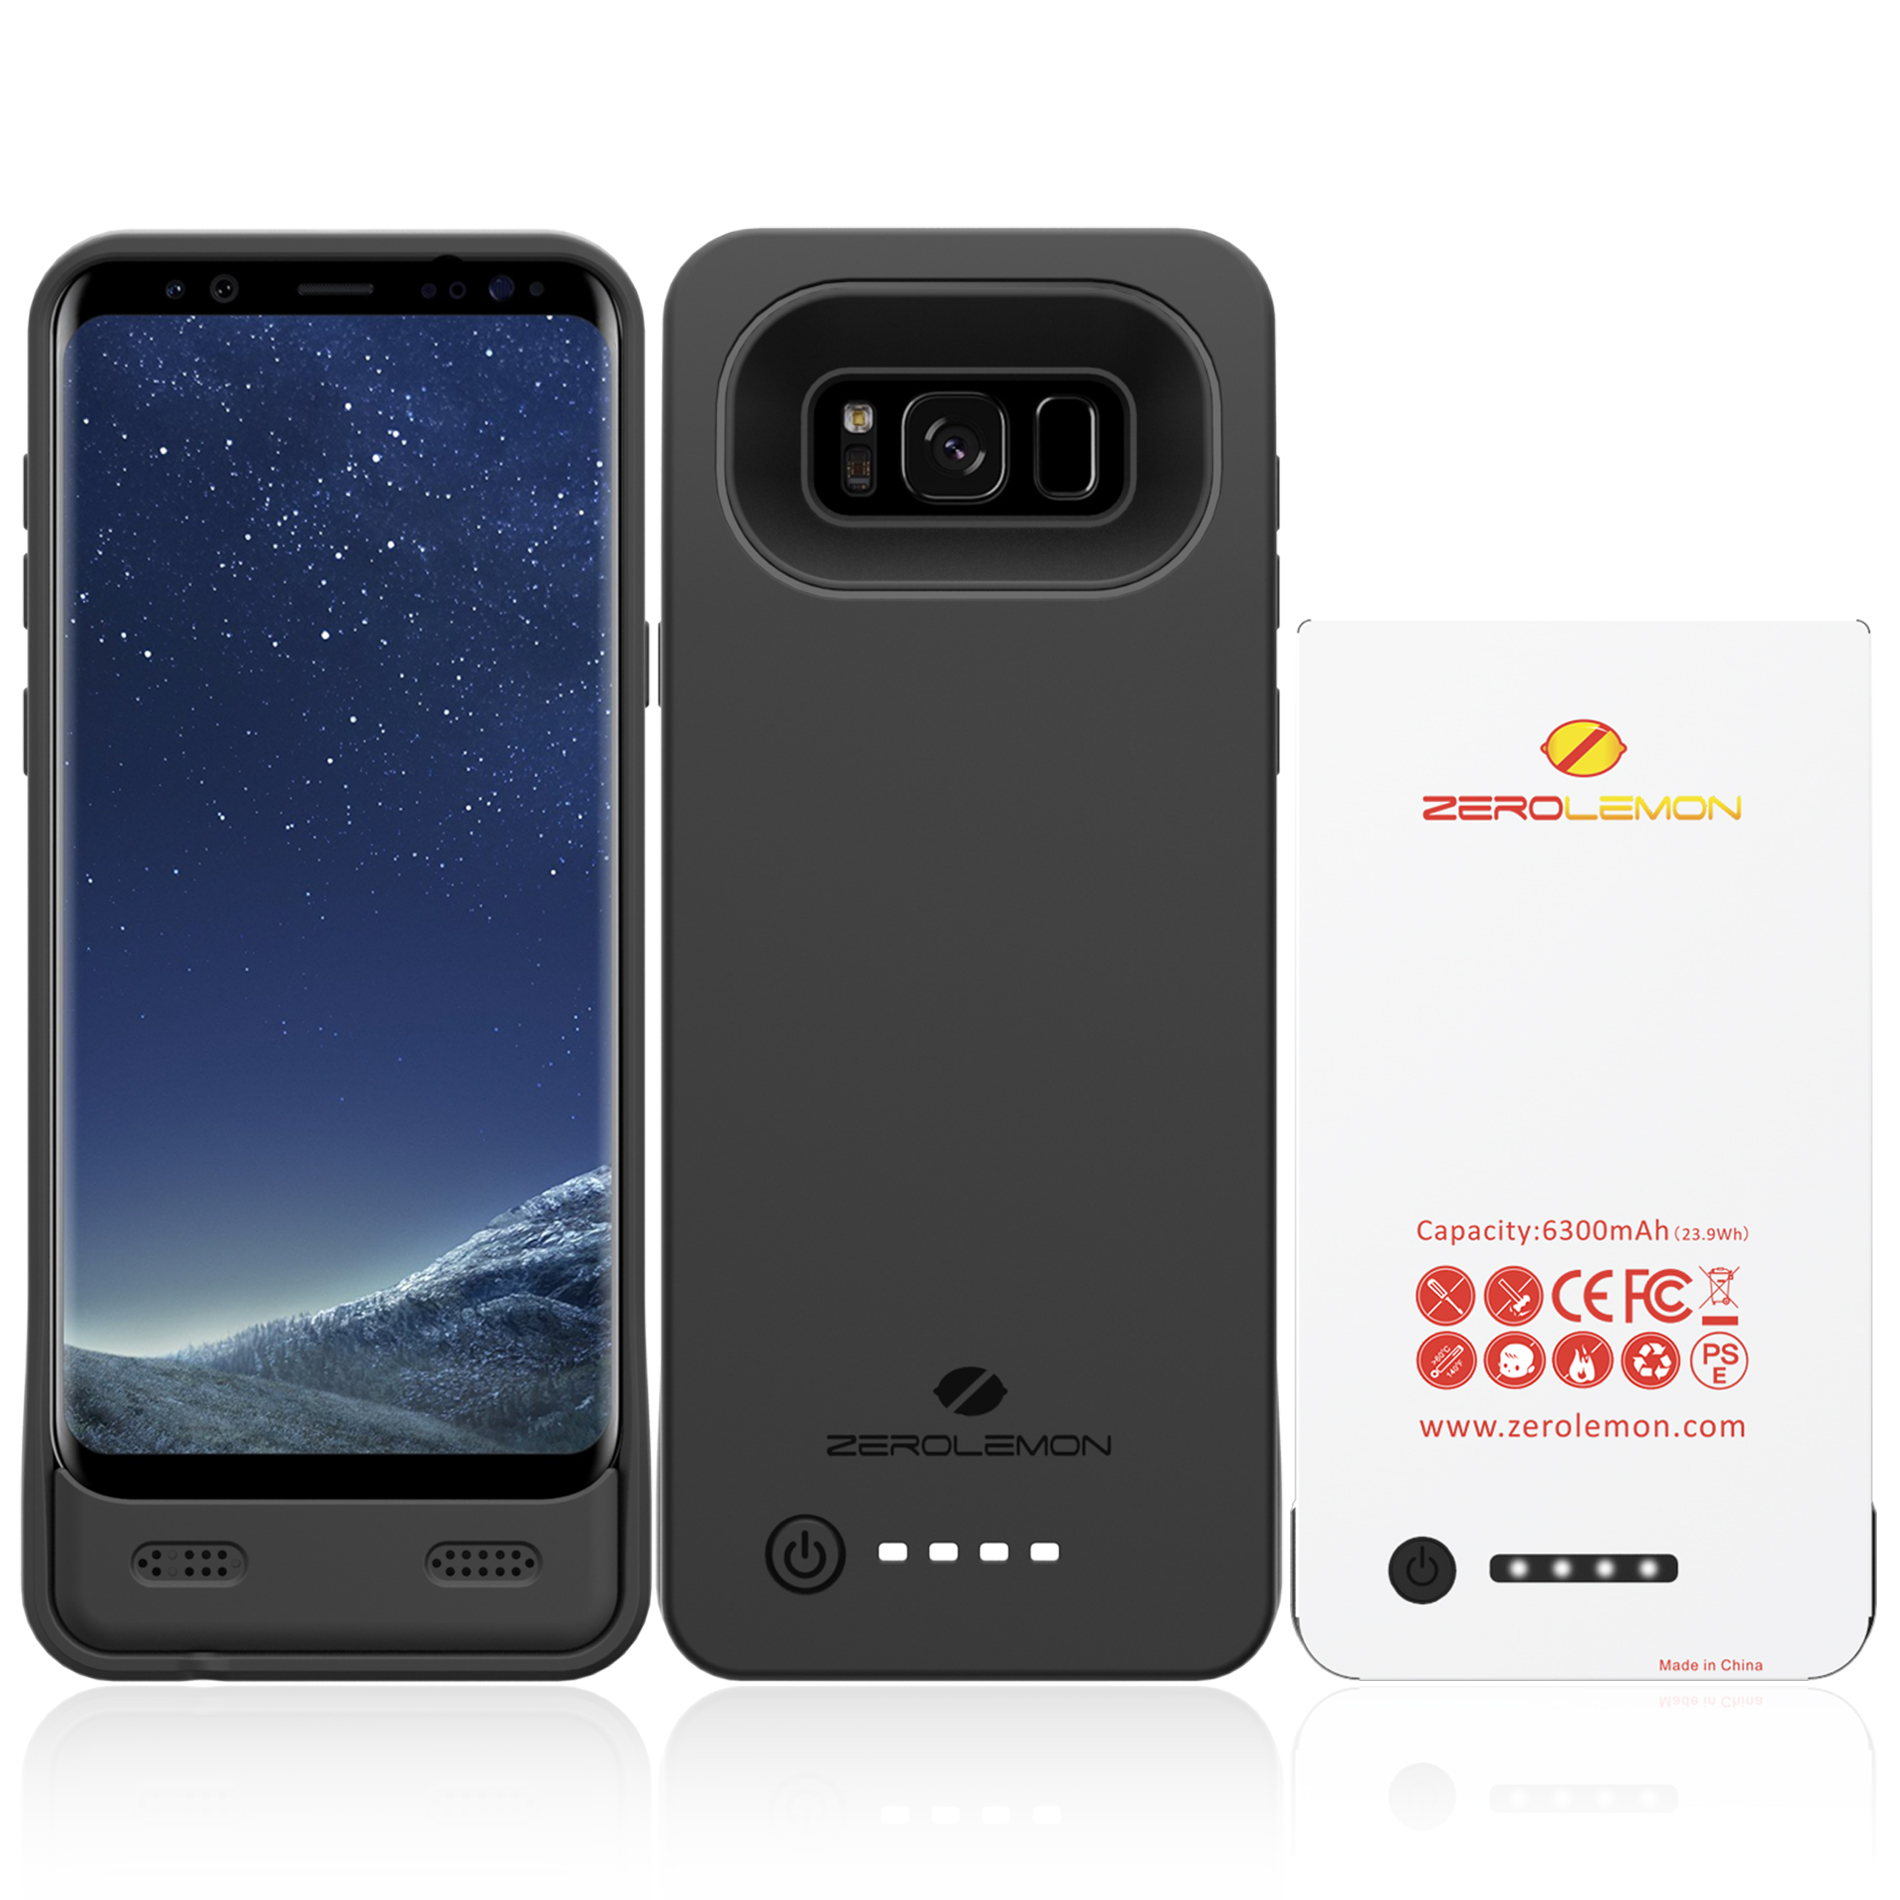 S Charger further Nexus Cee S Plus Mah Battery Case likewise Samsung Galaxy Note Probmlems also Chevycode Rconceptnomadhatch additionally Samsung Galaxy J H Charging Ways Solution Usb Jumper. on samsung galaxy battery charging problems